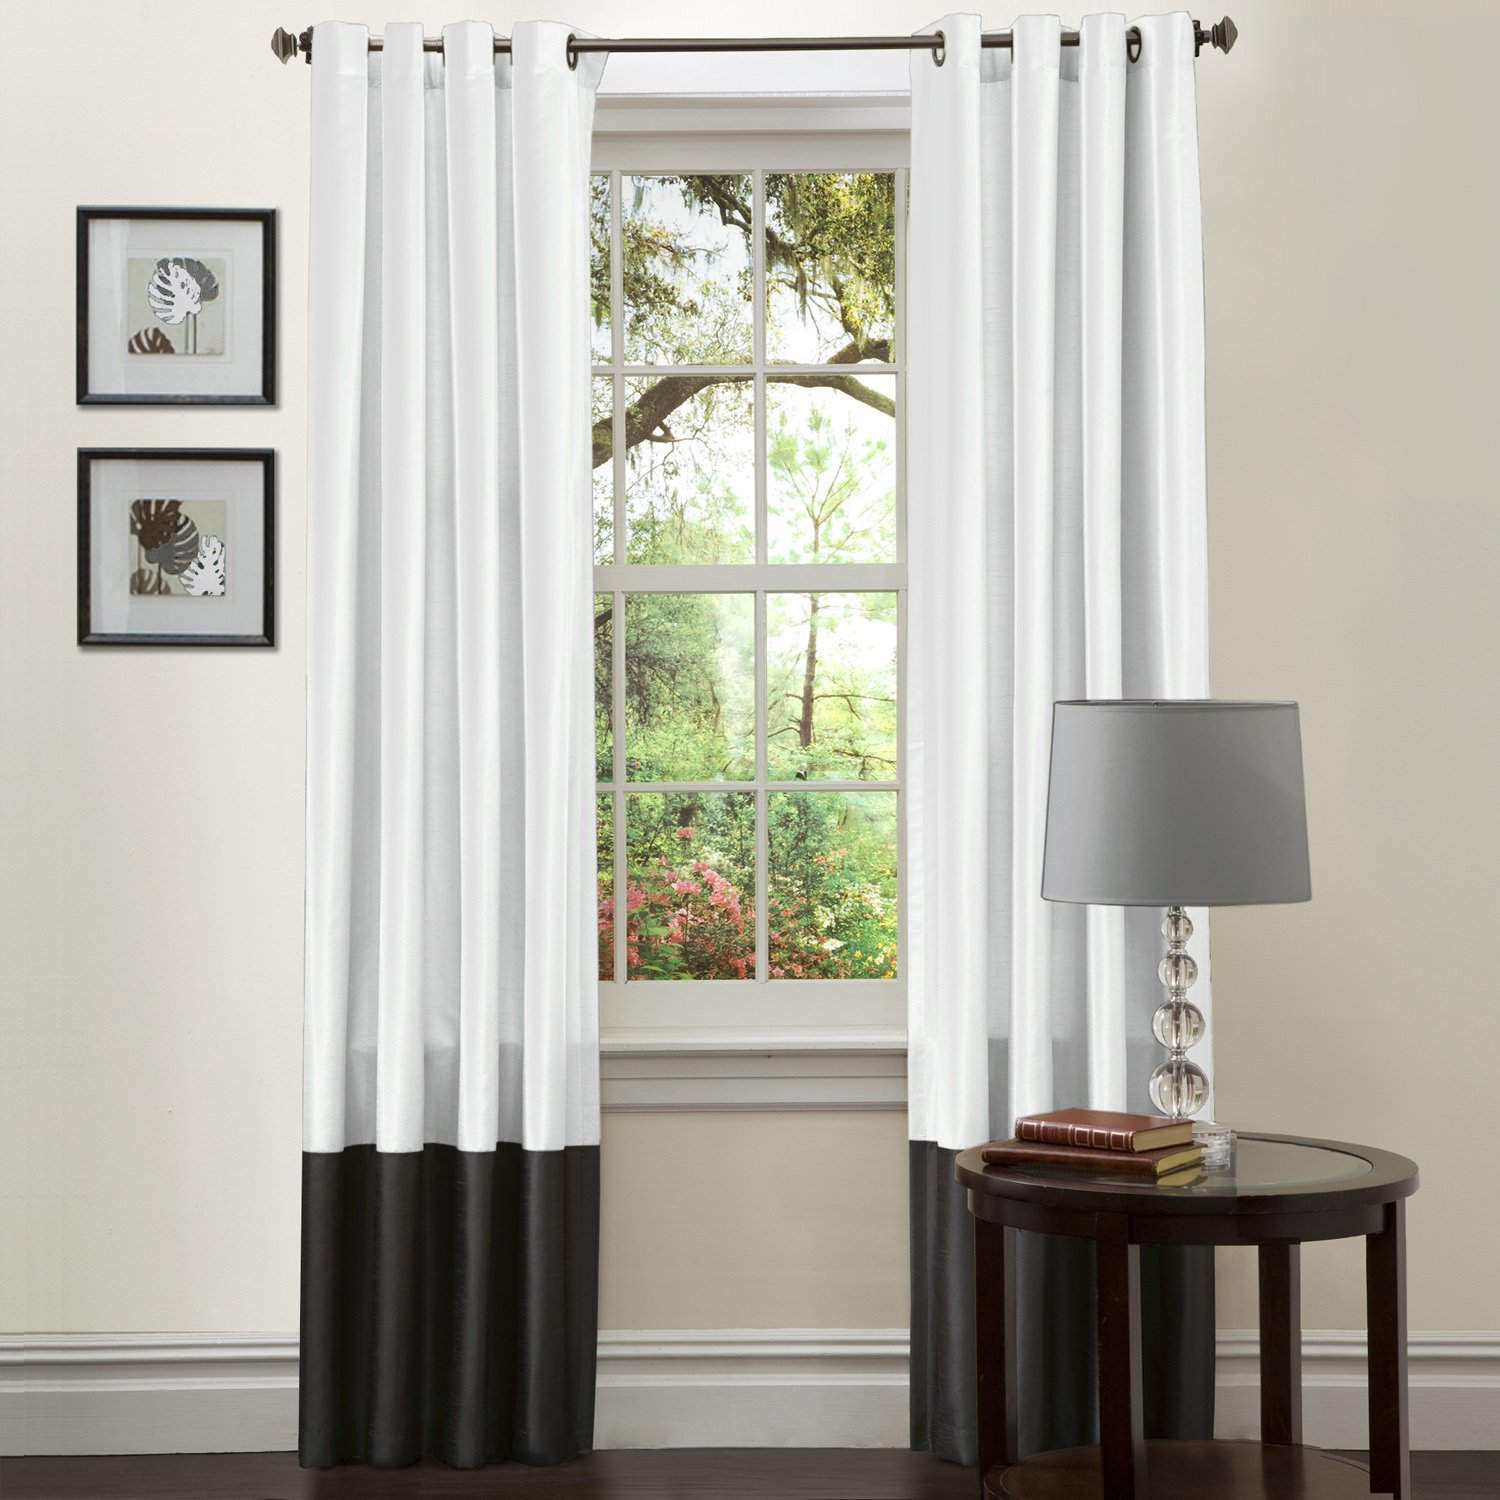 Simply Amazing Black And White Curtains To Decorate Your Home Interior Ideas 4 Homes